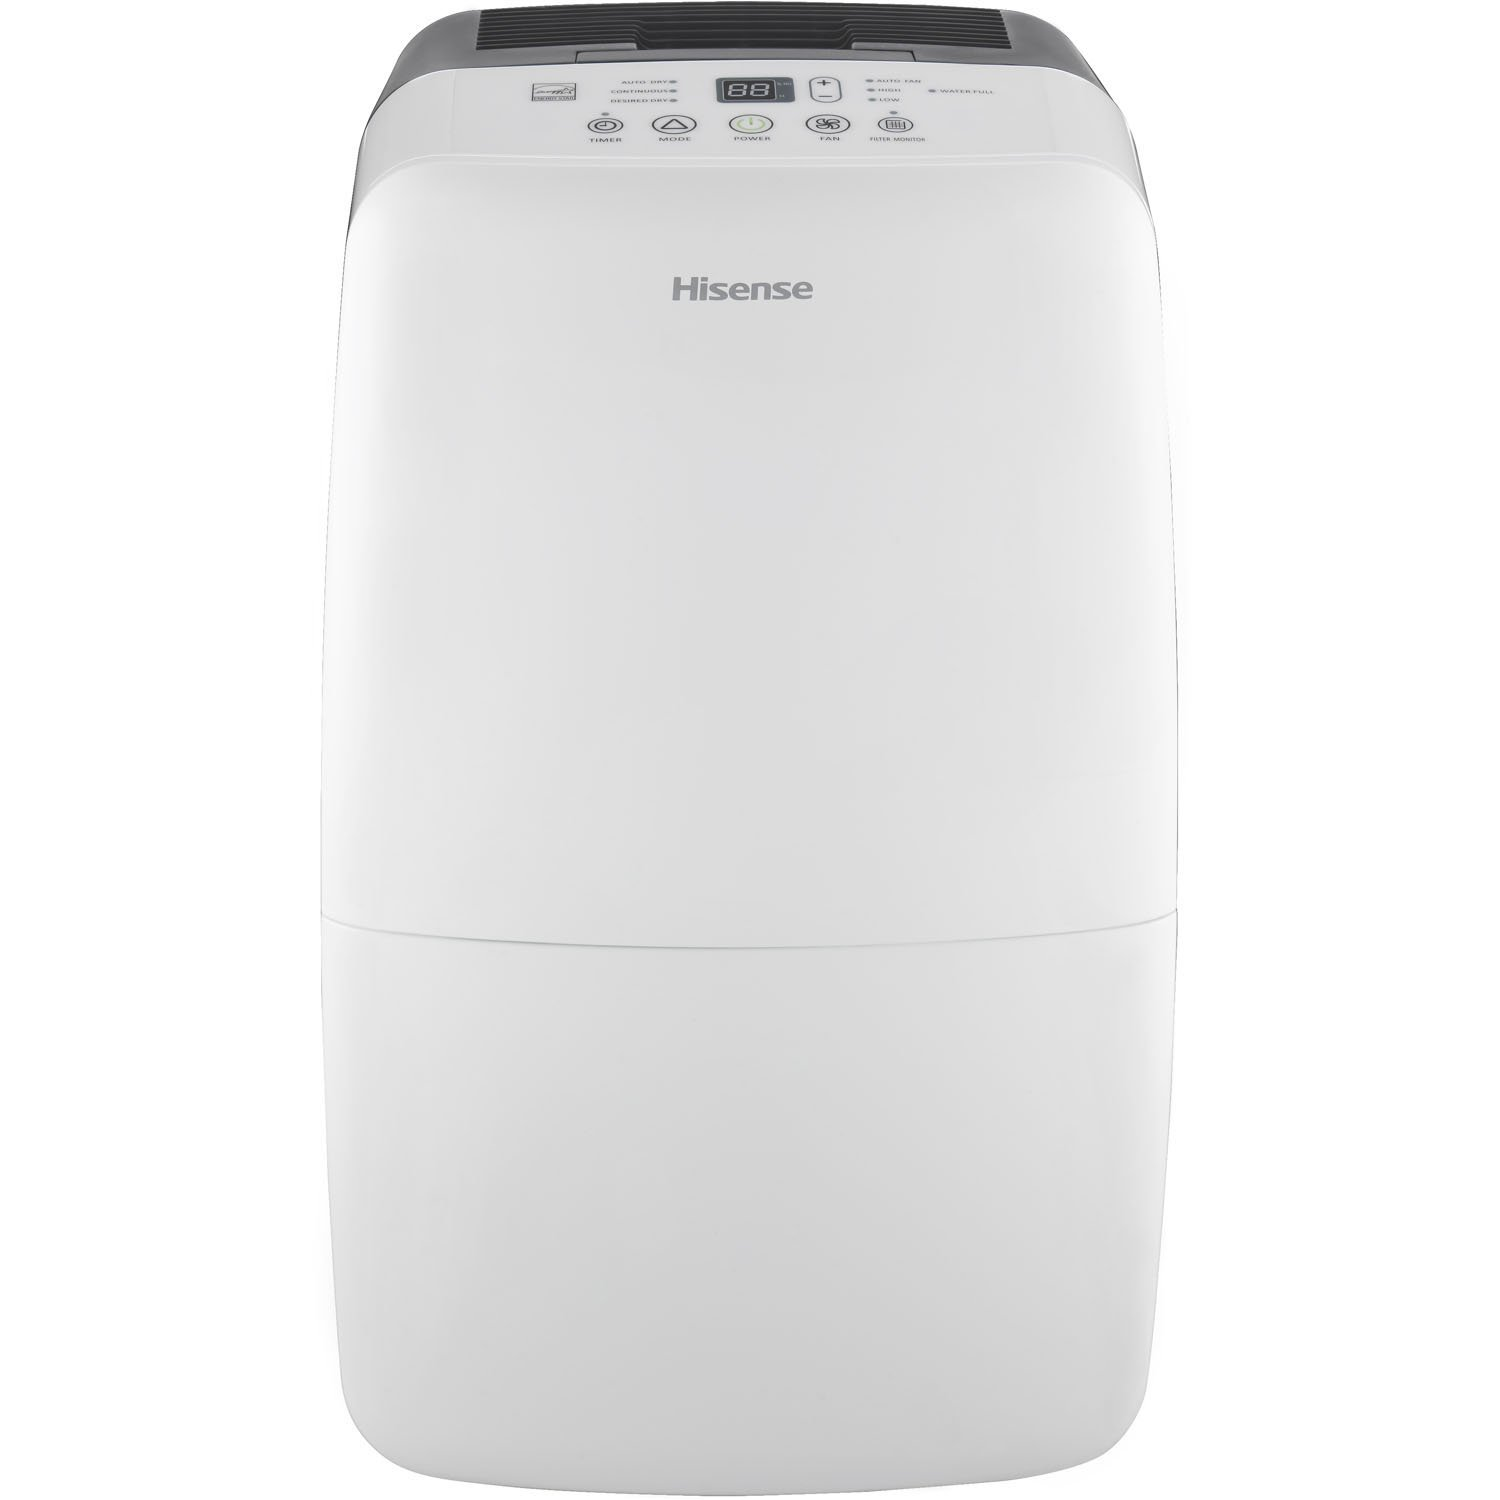 Tested Review Hisense DH 70KP1SDLE Energy Star 70 Pint 2 Speed